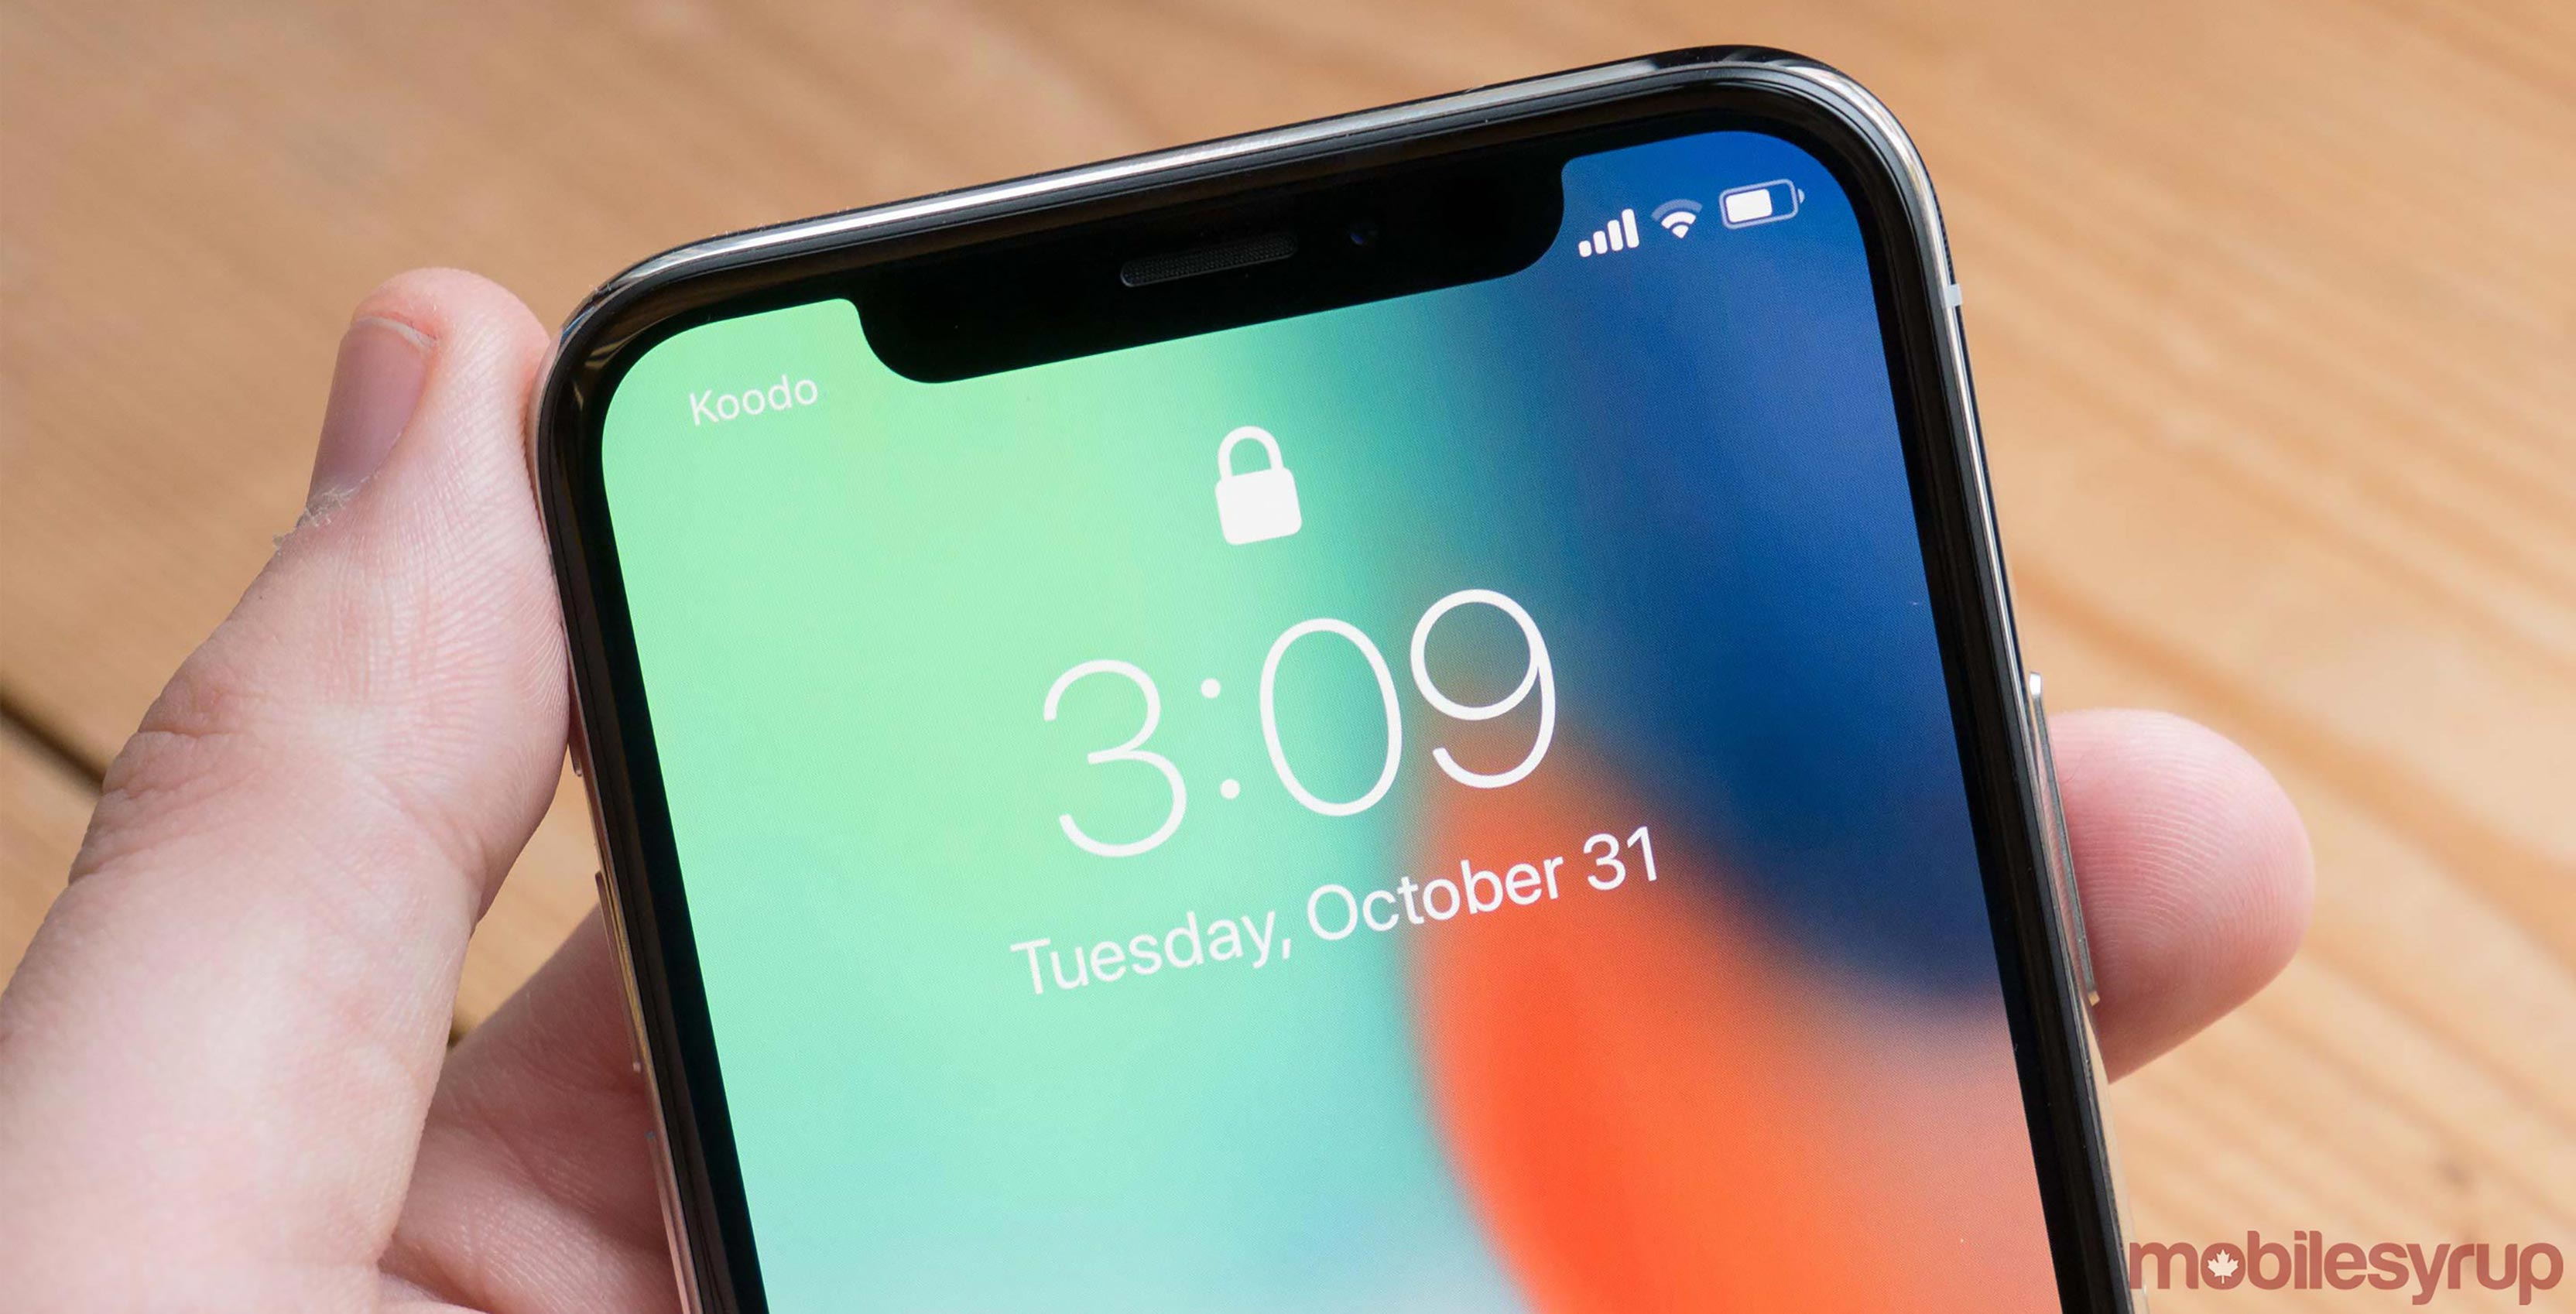 Samsung to reportedly start iPhone X Plus display production in May